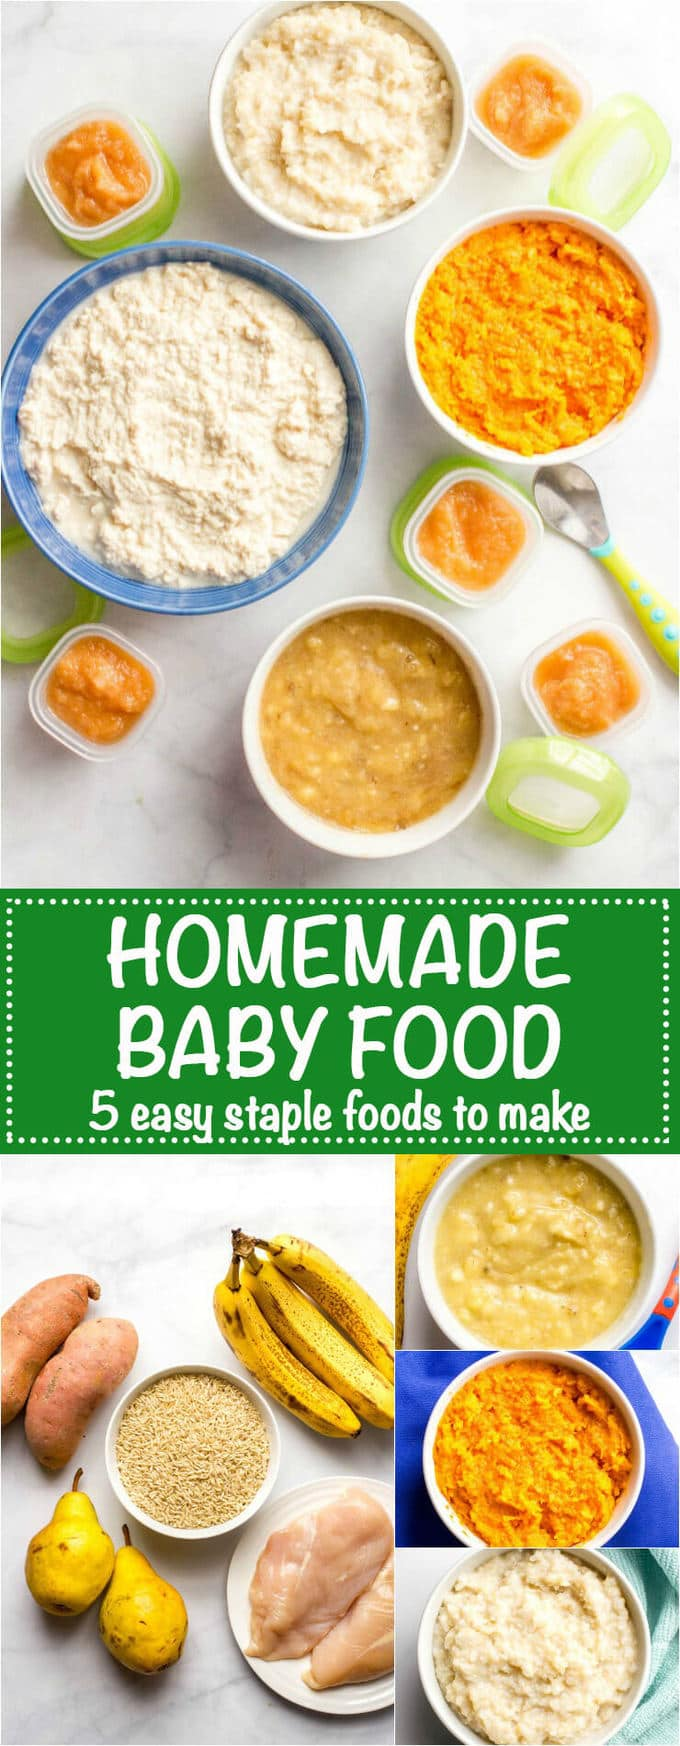 Homemade baby food -- sweet potatoes, brown rice, chicken, pears and banana ...